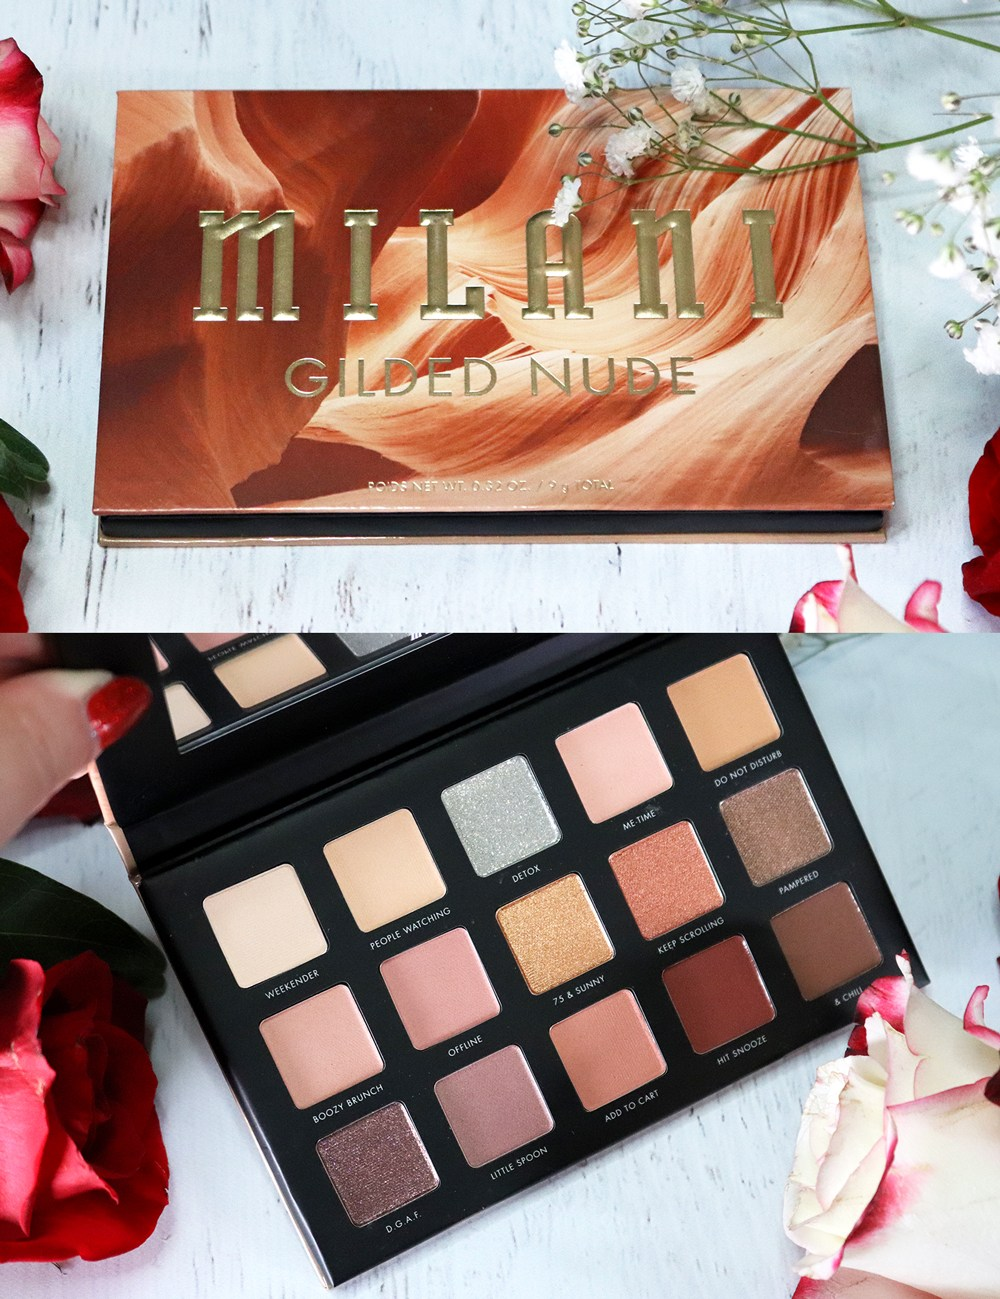 Cruelty Free Holiday Gift Guide 2020 - Milani Gilded Nude Palette